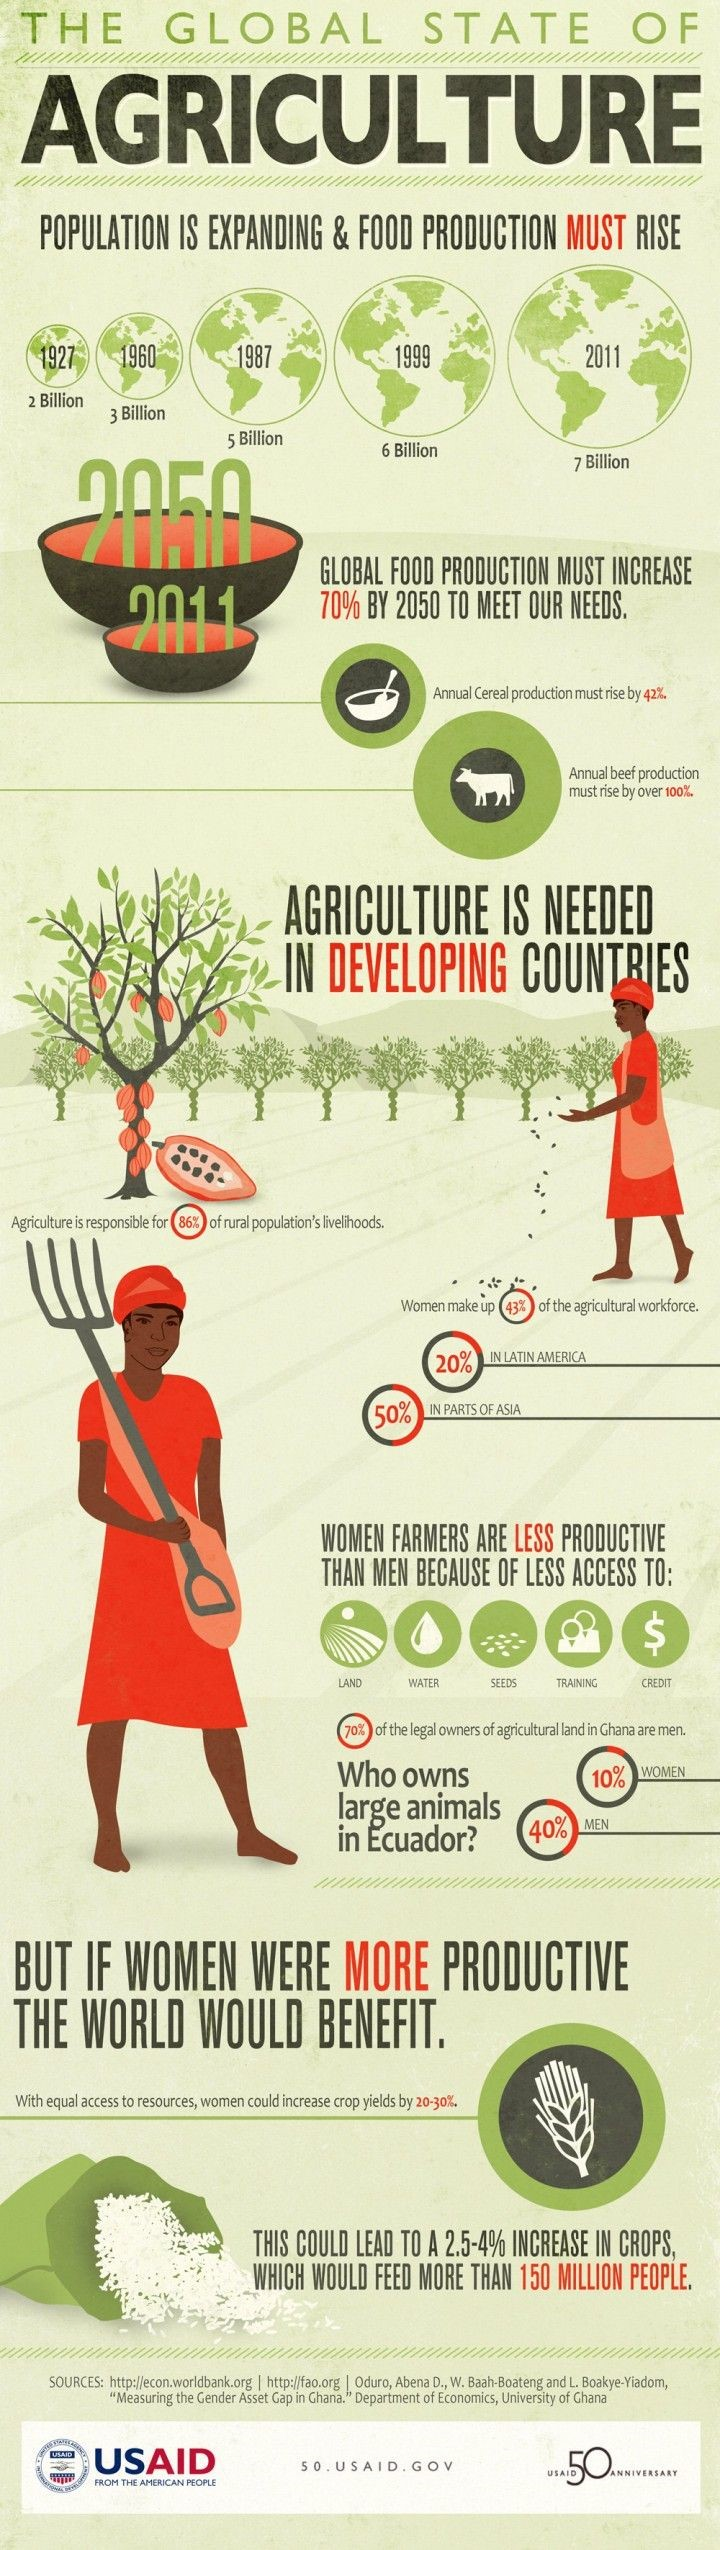 It may seem obvious, but food production must increase to meet the needs of a growing population. This USAID infographic explains the critical role of agriculture in meeting the food needs of people around the world.